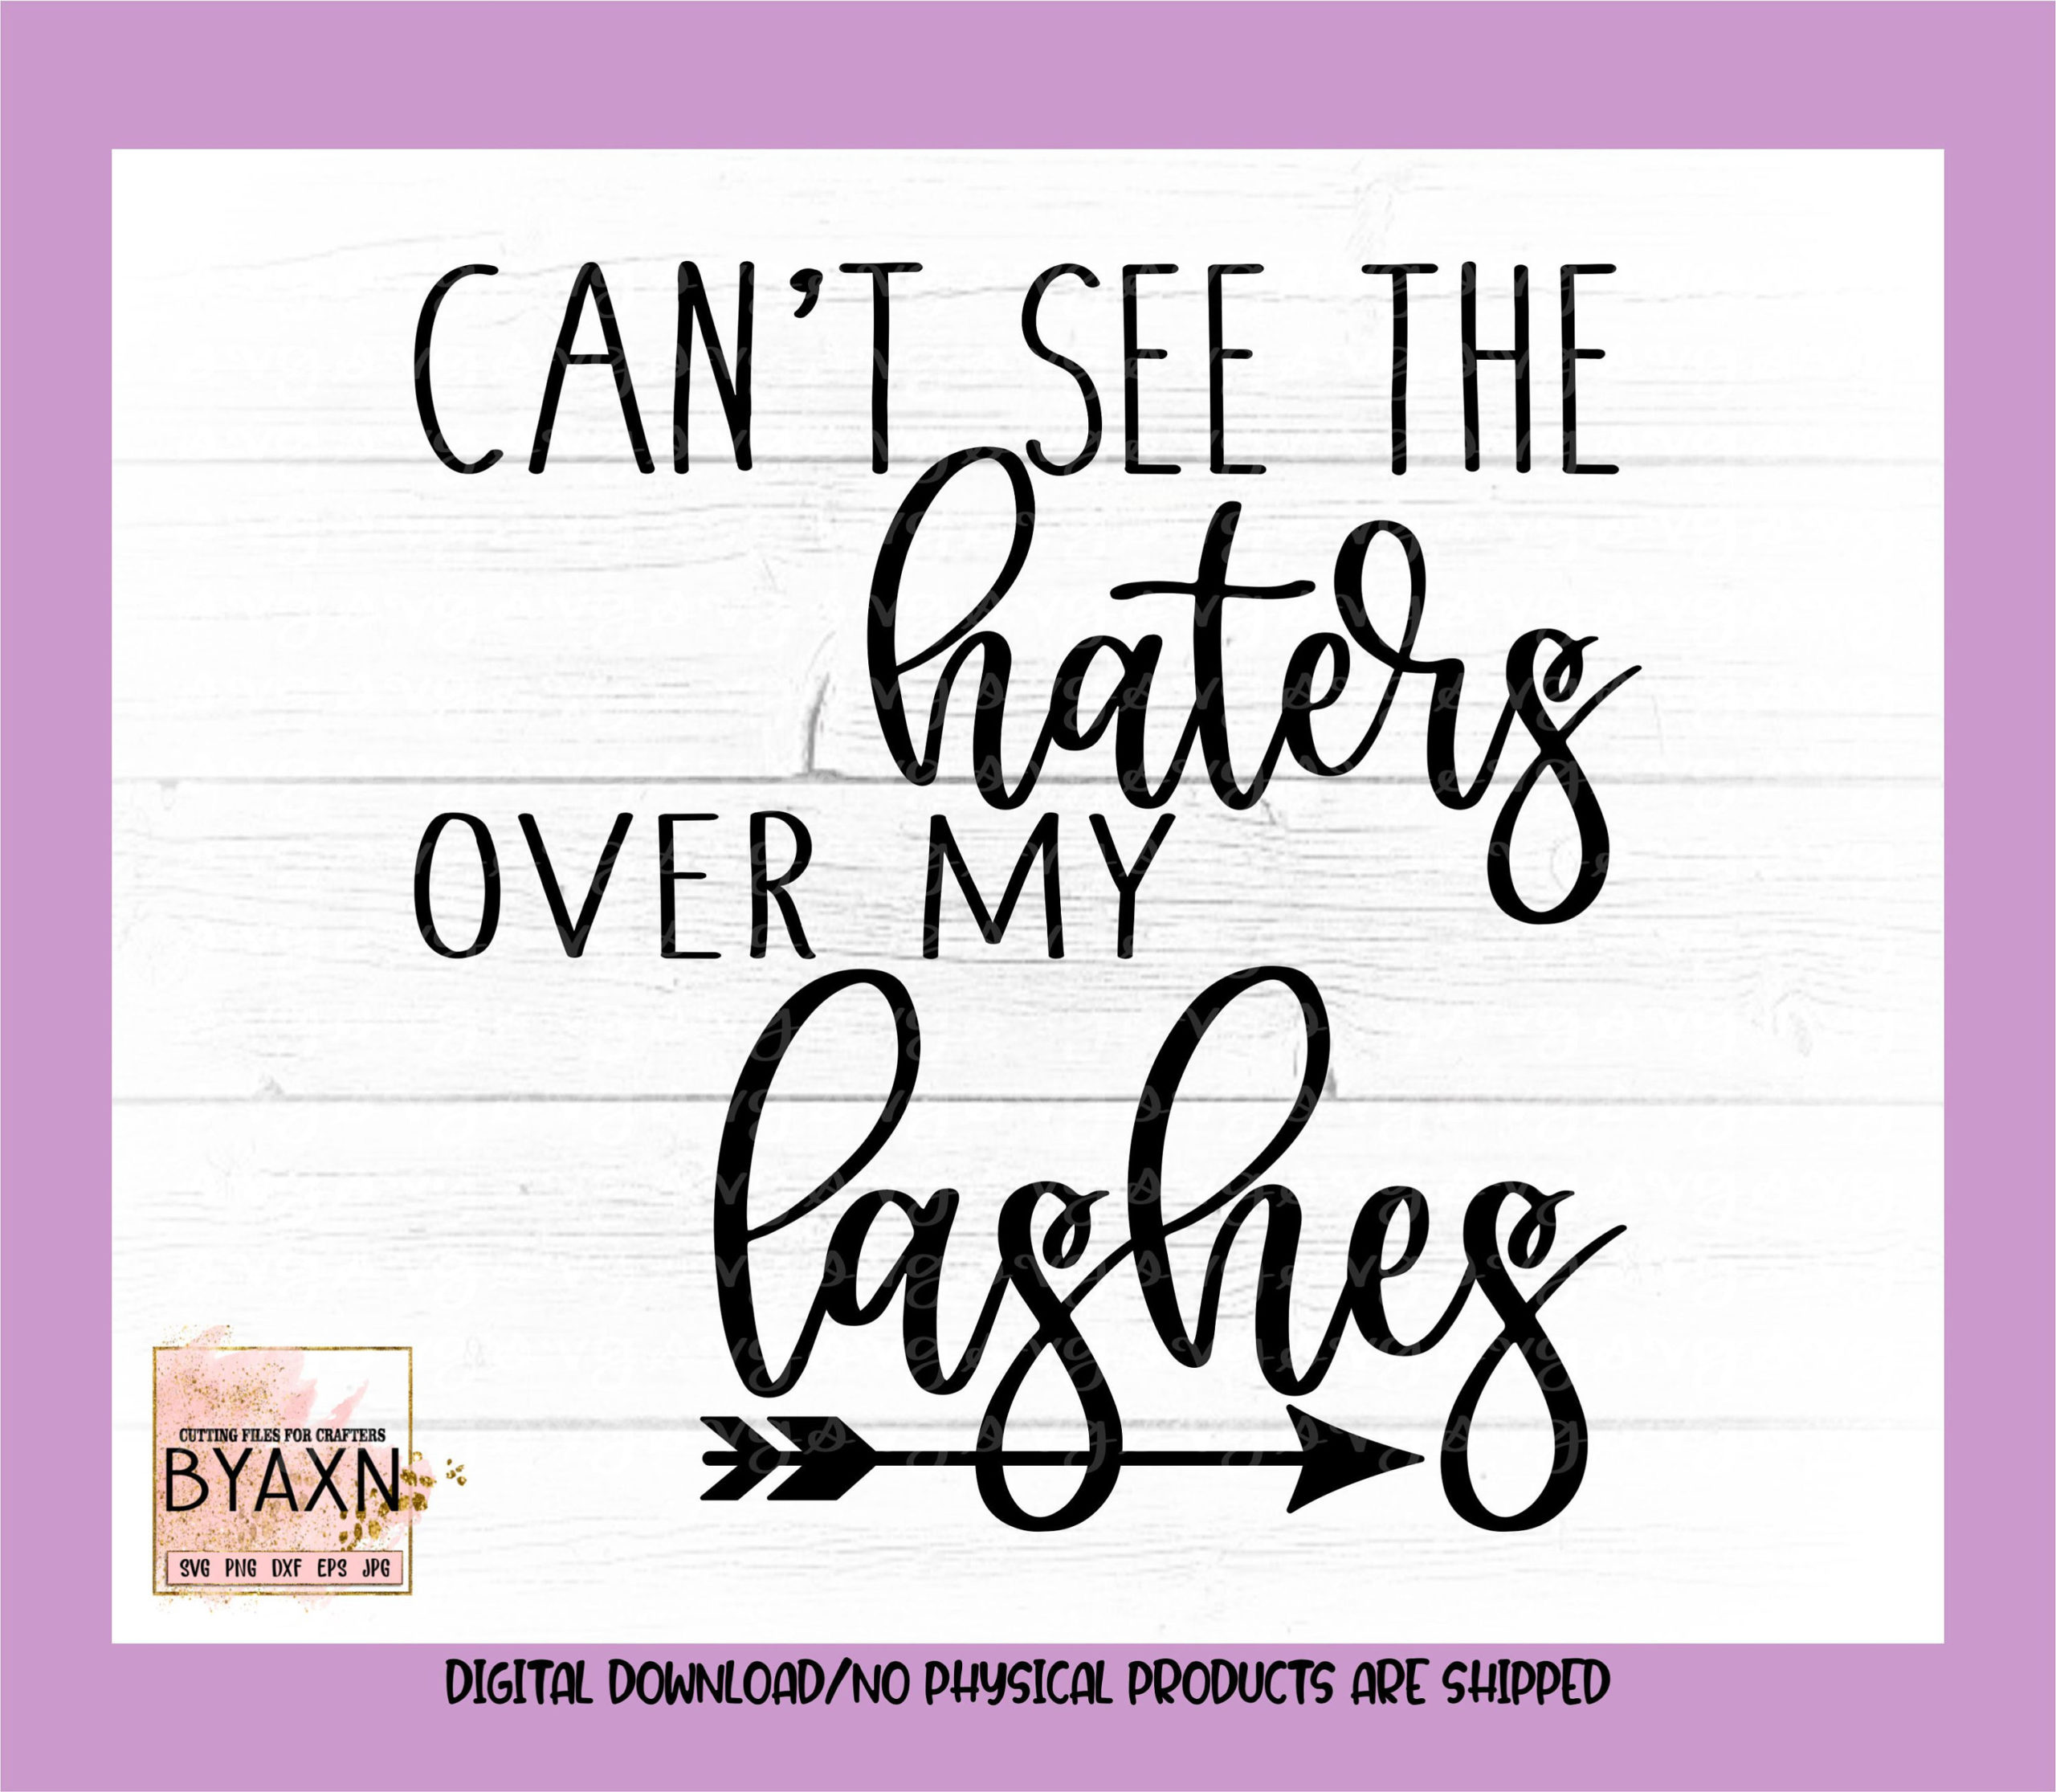 Make-up-svgcant-see-the-haters-over-my-lashes-svg-mascara-svg-lashes-svg-lash-svg-makeup-svg-designs-makeup-cut-file-cricut-svg-60514c84